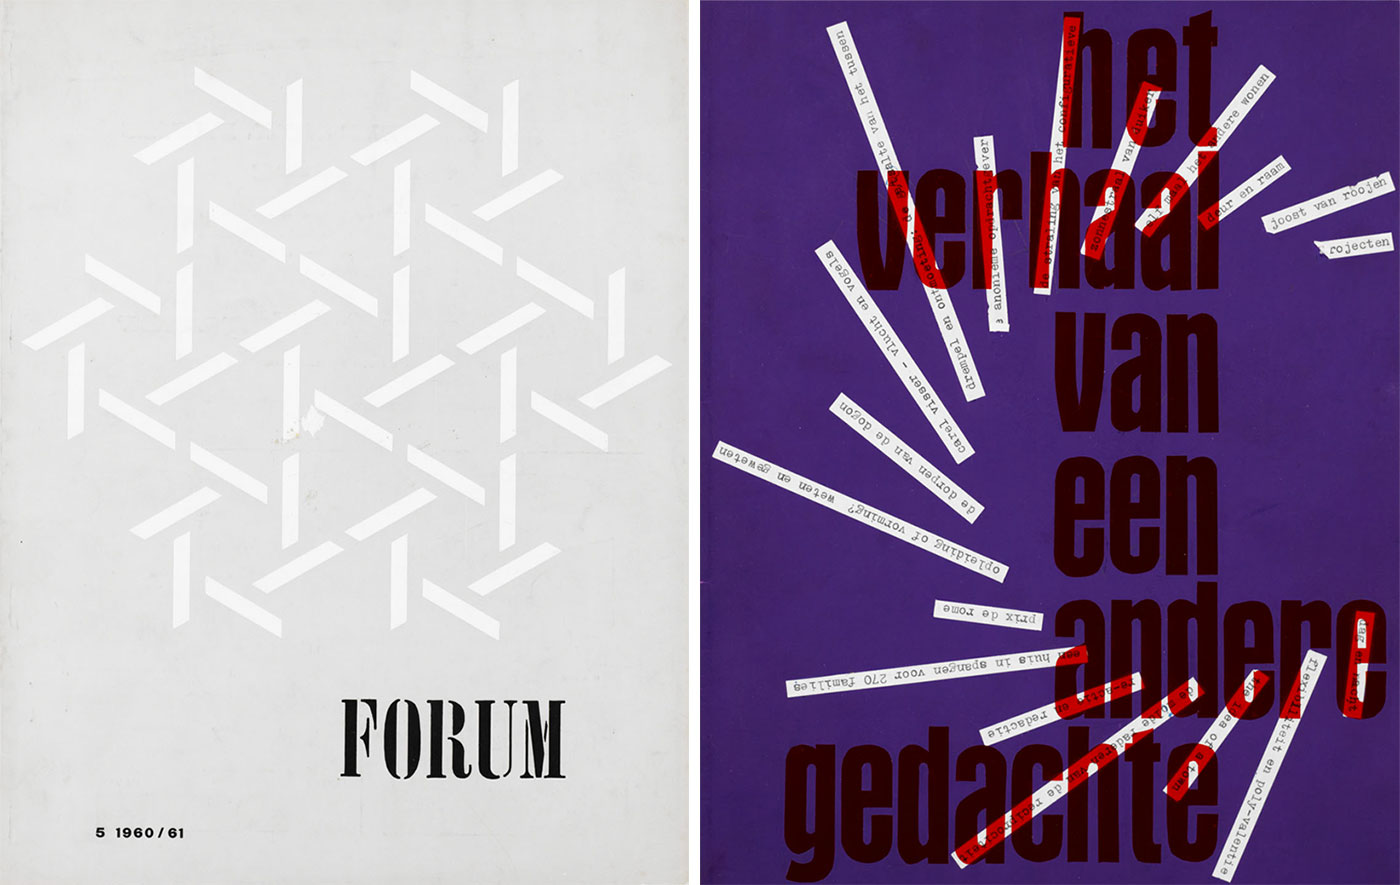 Jurriaan-Schrofer-forum-magazine-01